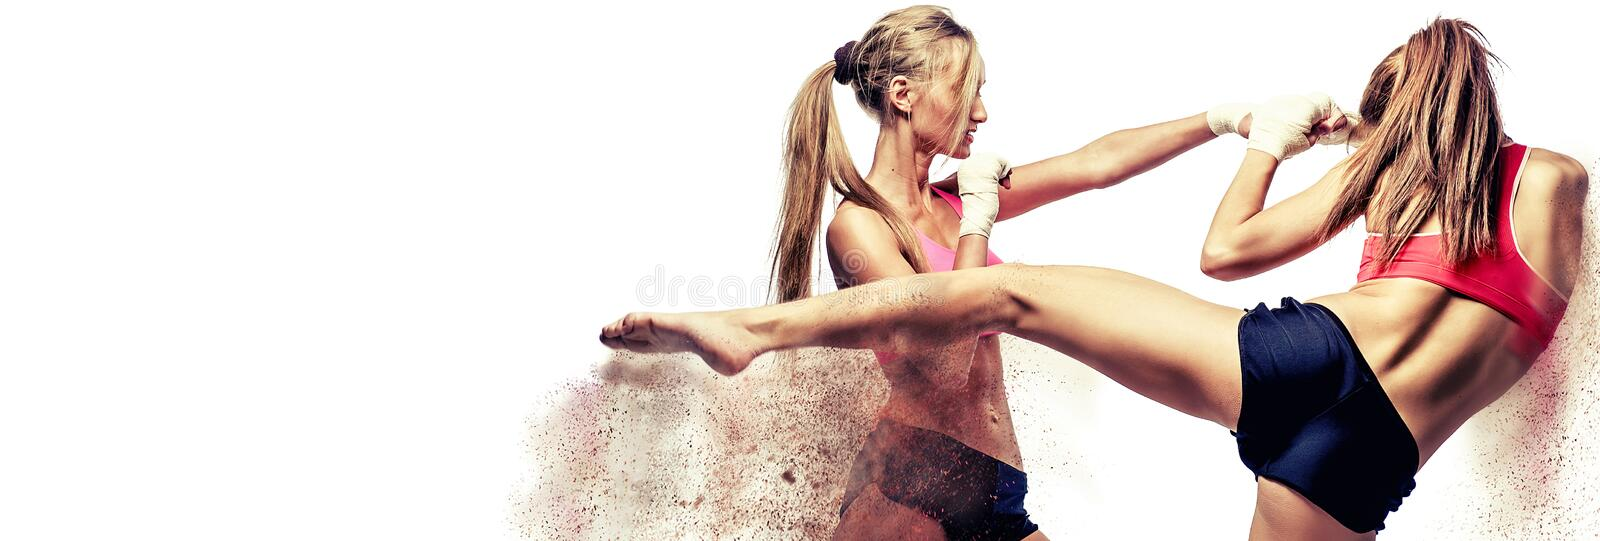 Two attractive athletic girls fighting, standing on defence pose image with digital effects sandy fragments. stock photos